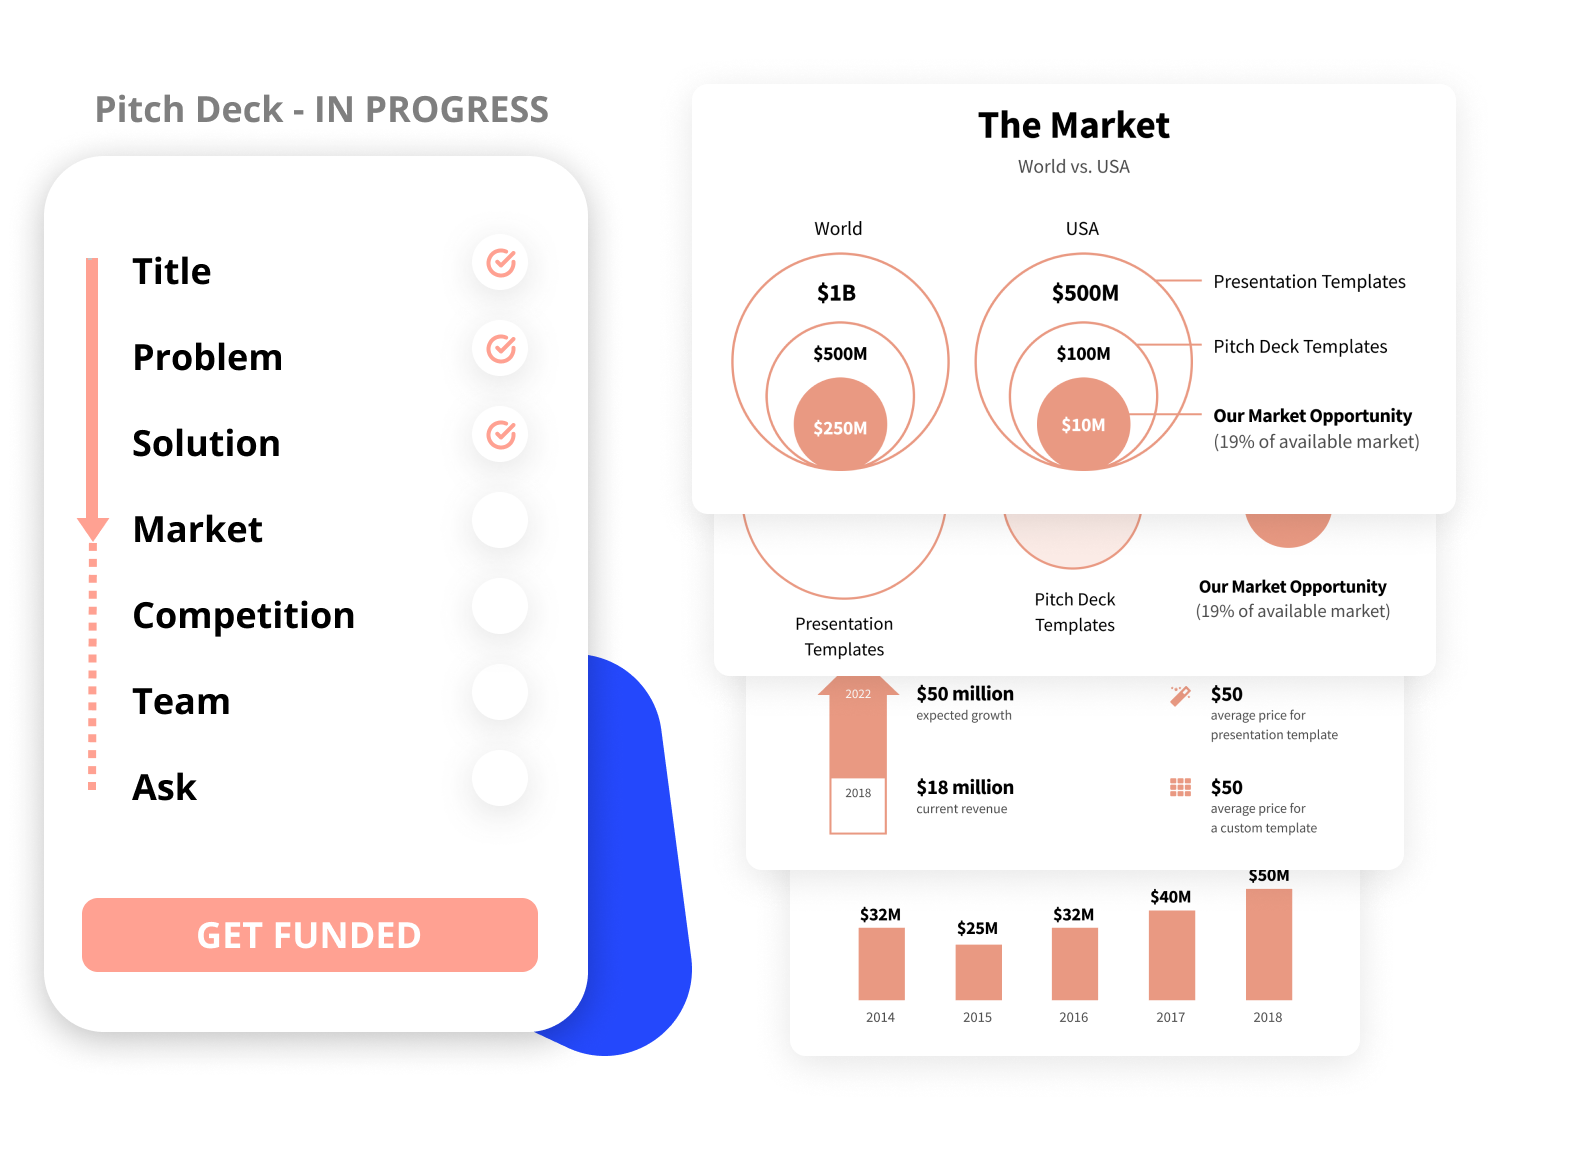 Structure of the figma pitch deck